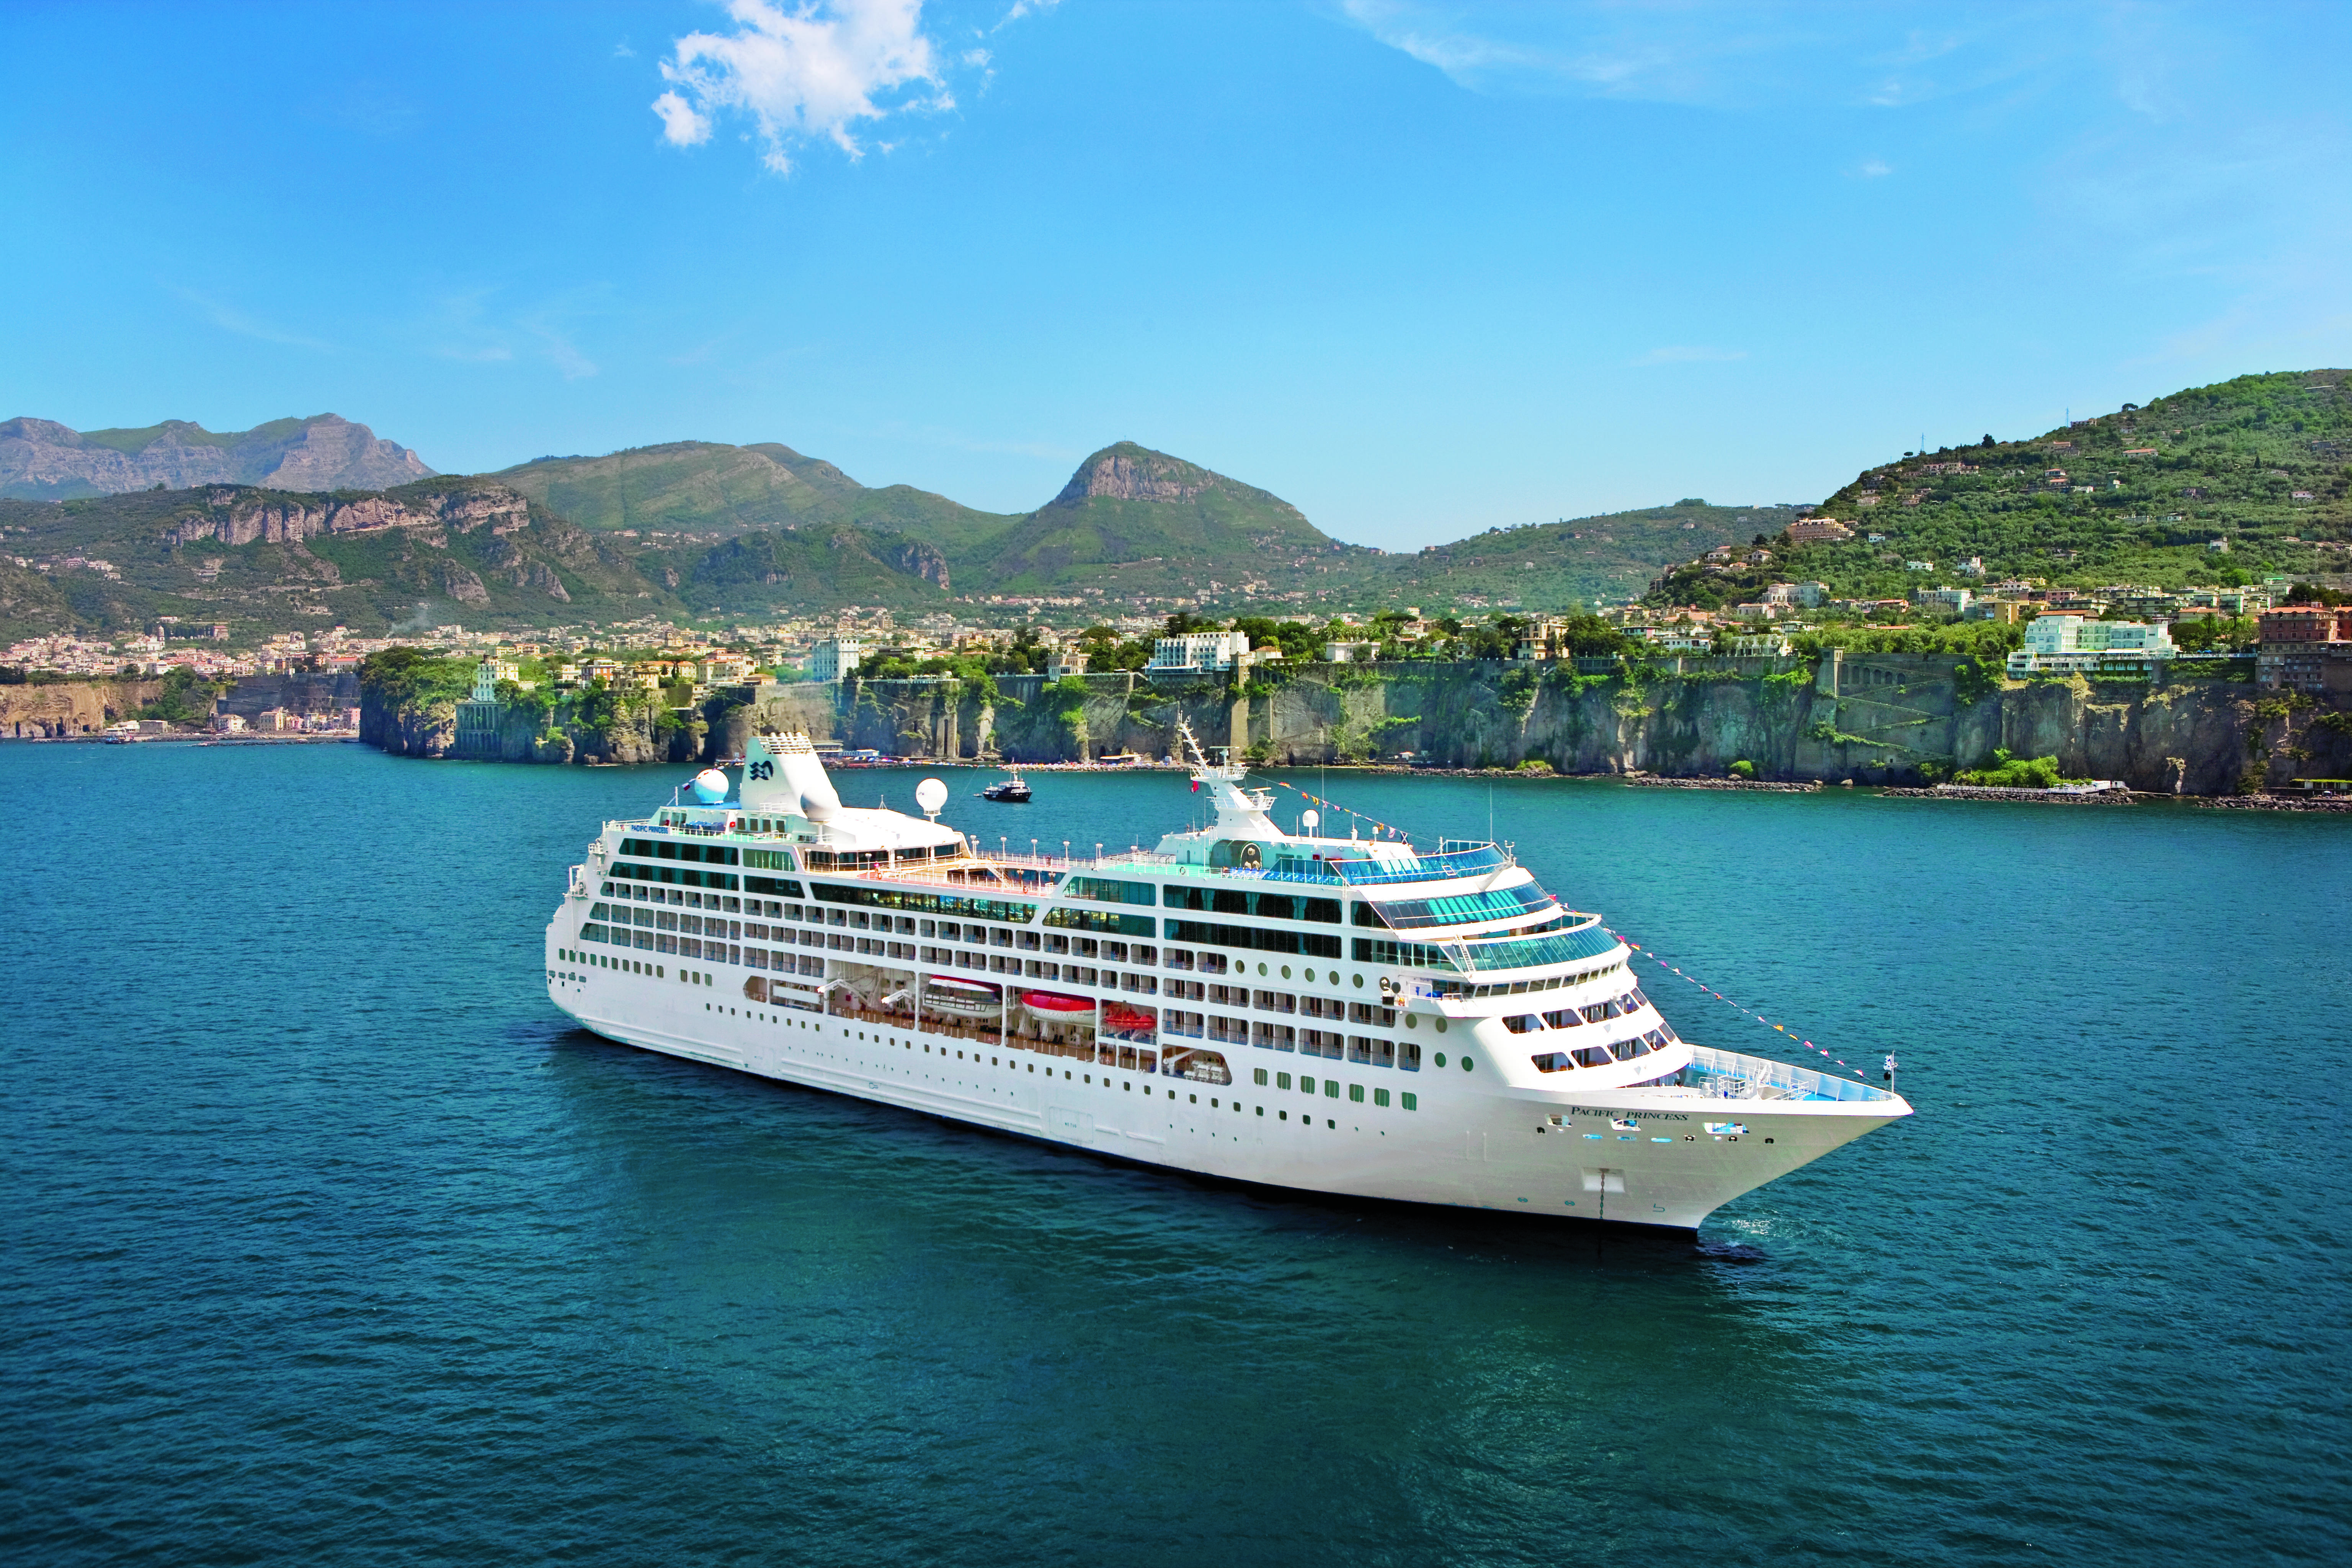 Princess Pacific Princess Cruise Ship Reviews UPDATED - Guest entertainers wanted for cruise ships